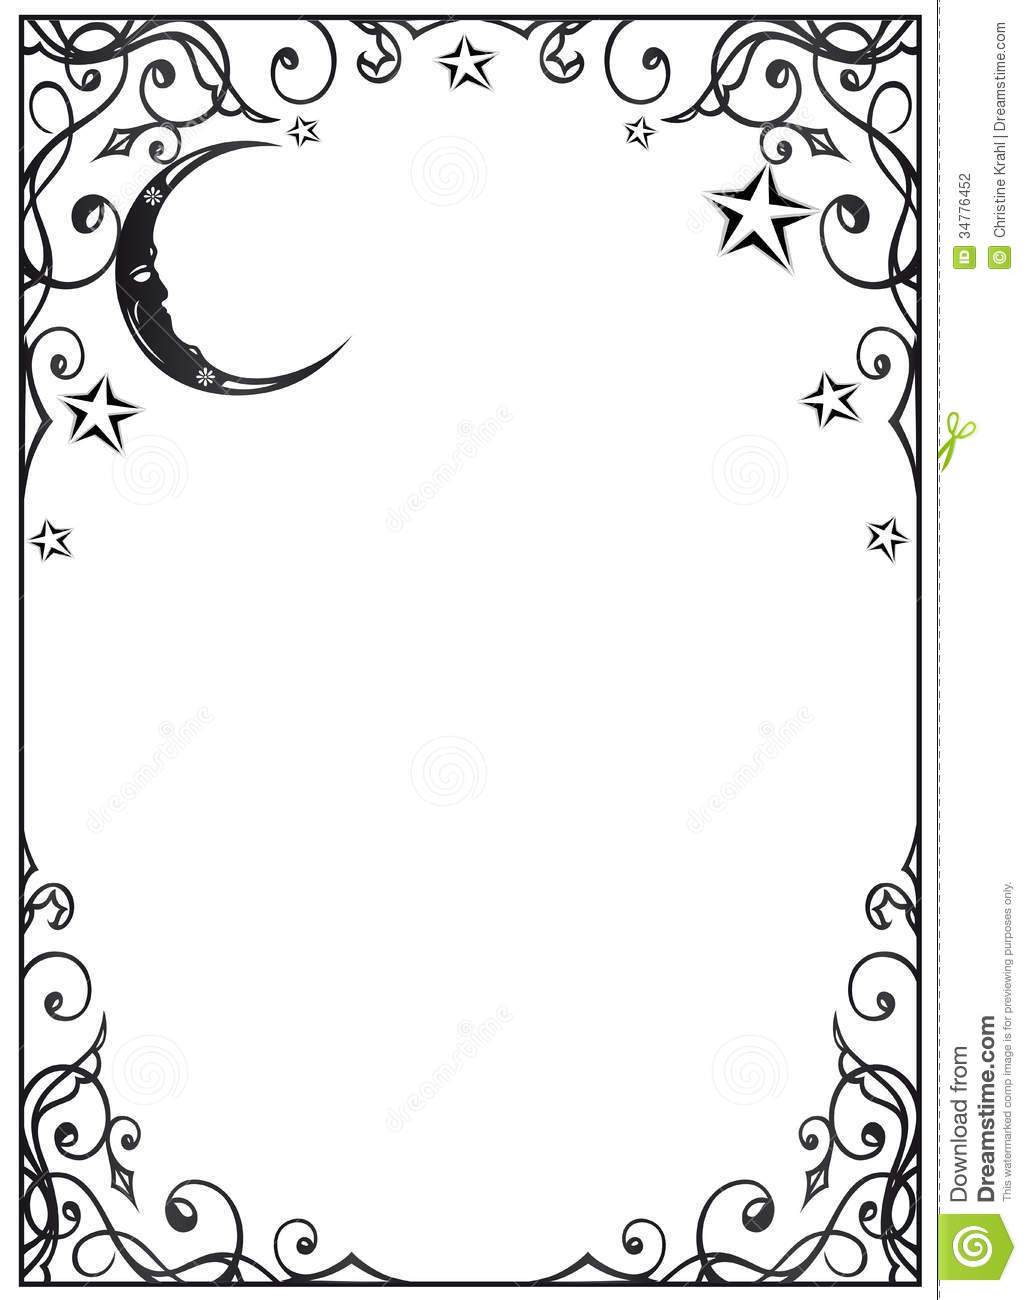 Moon And Stars Border Clipart - Clipart Kid